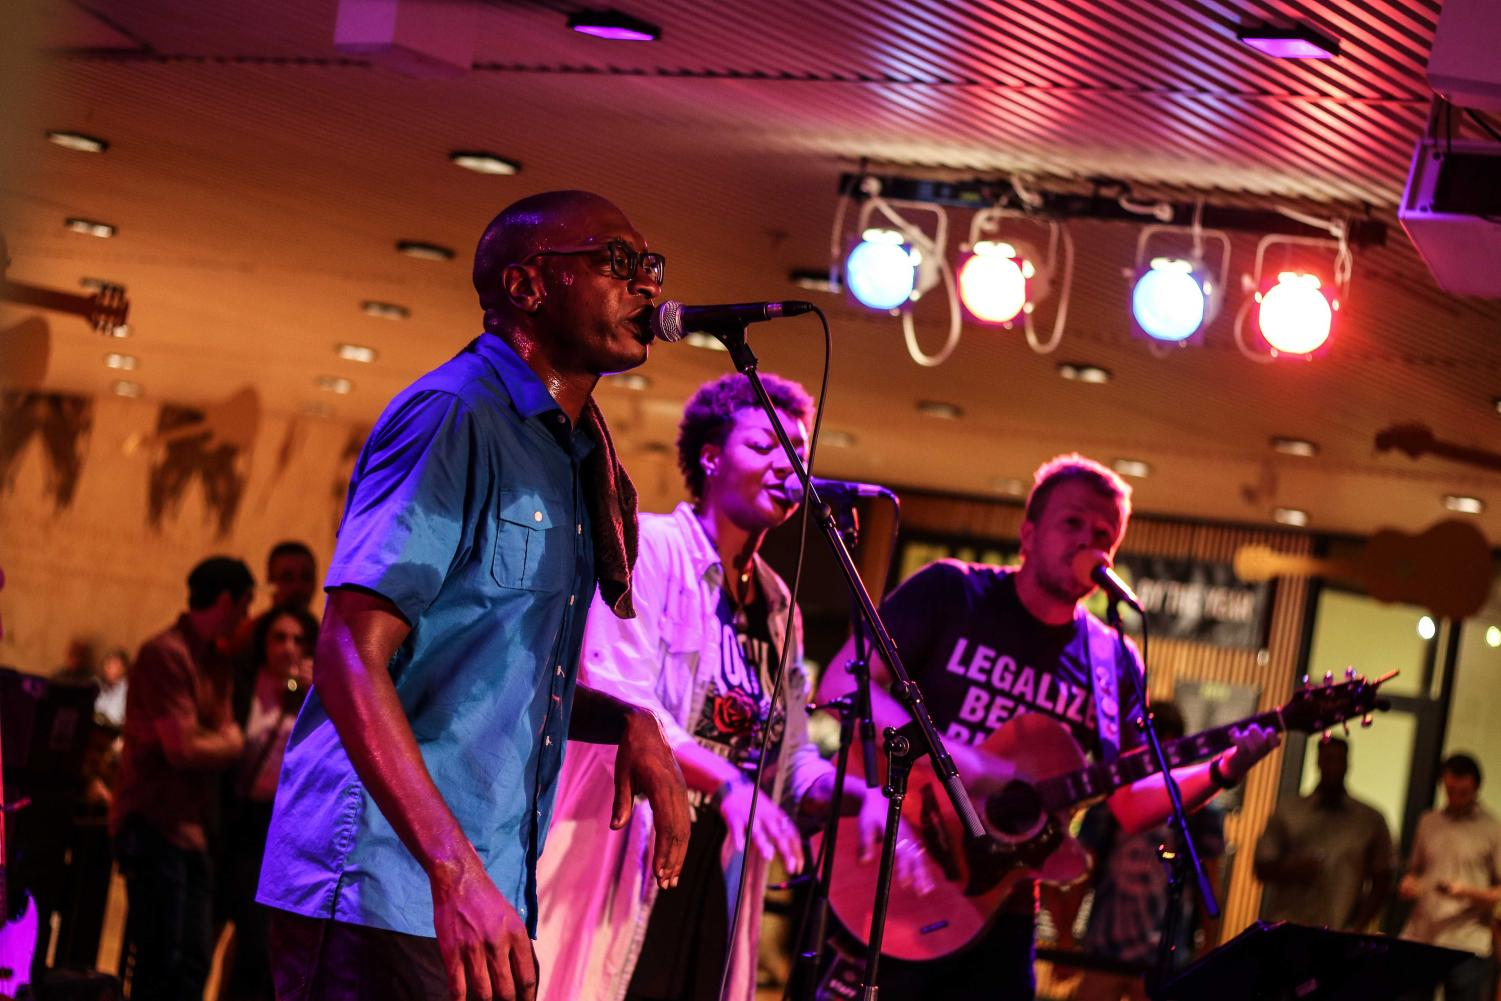 Brandon T. Washington and friends perform at the Krannert Center for the Performing Arts on Saturday. The annual guitar festival hosts a variety of acts which draw crowds from all around the C-U community.